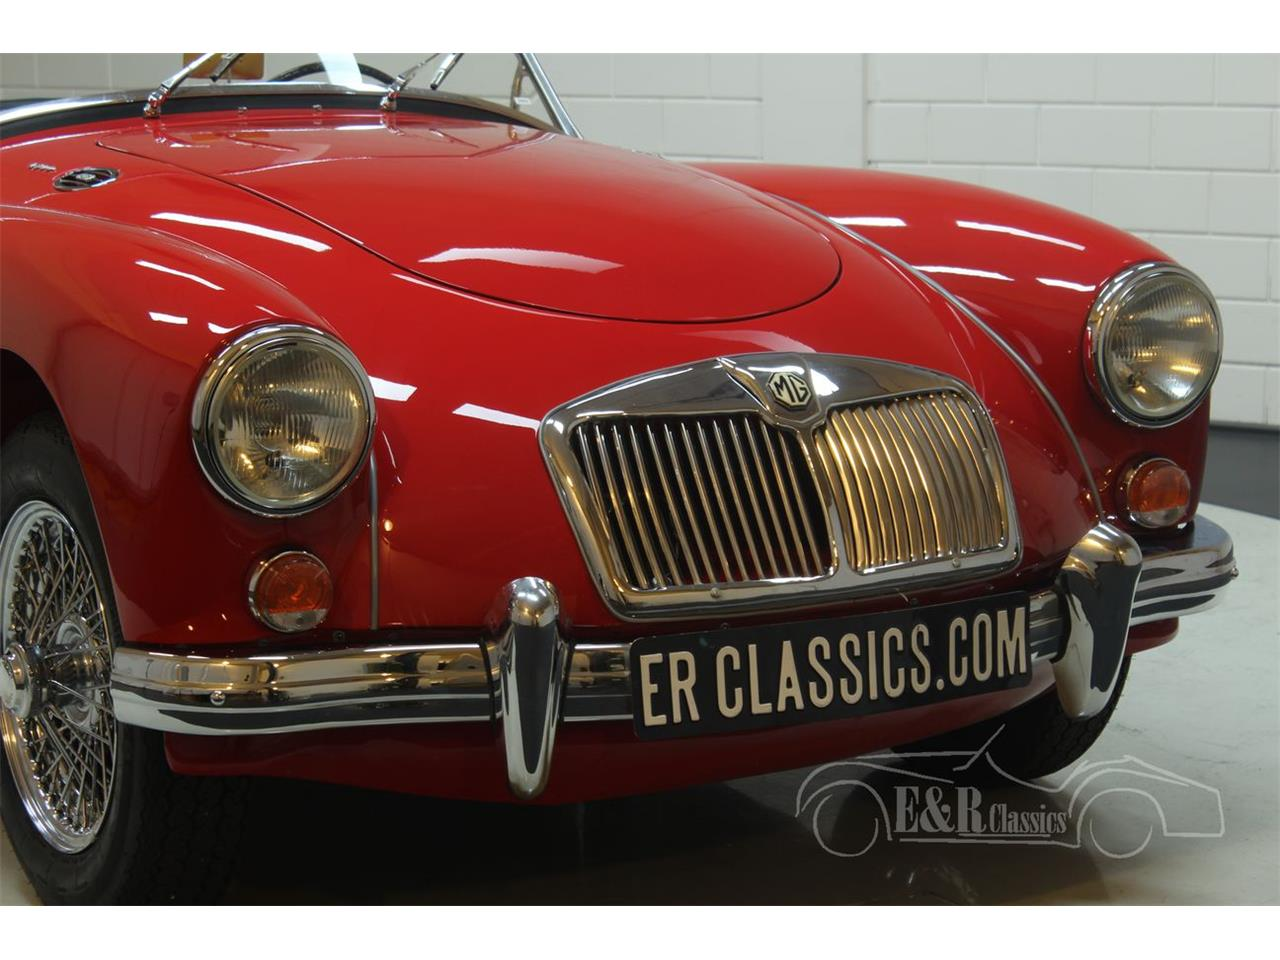 Large Picture of '59 MG MGA located in Waalwijk - Keine Angabe - Offered by E & R Classics - PGST